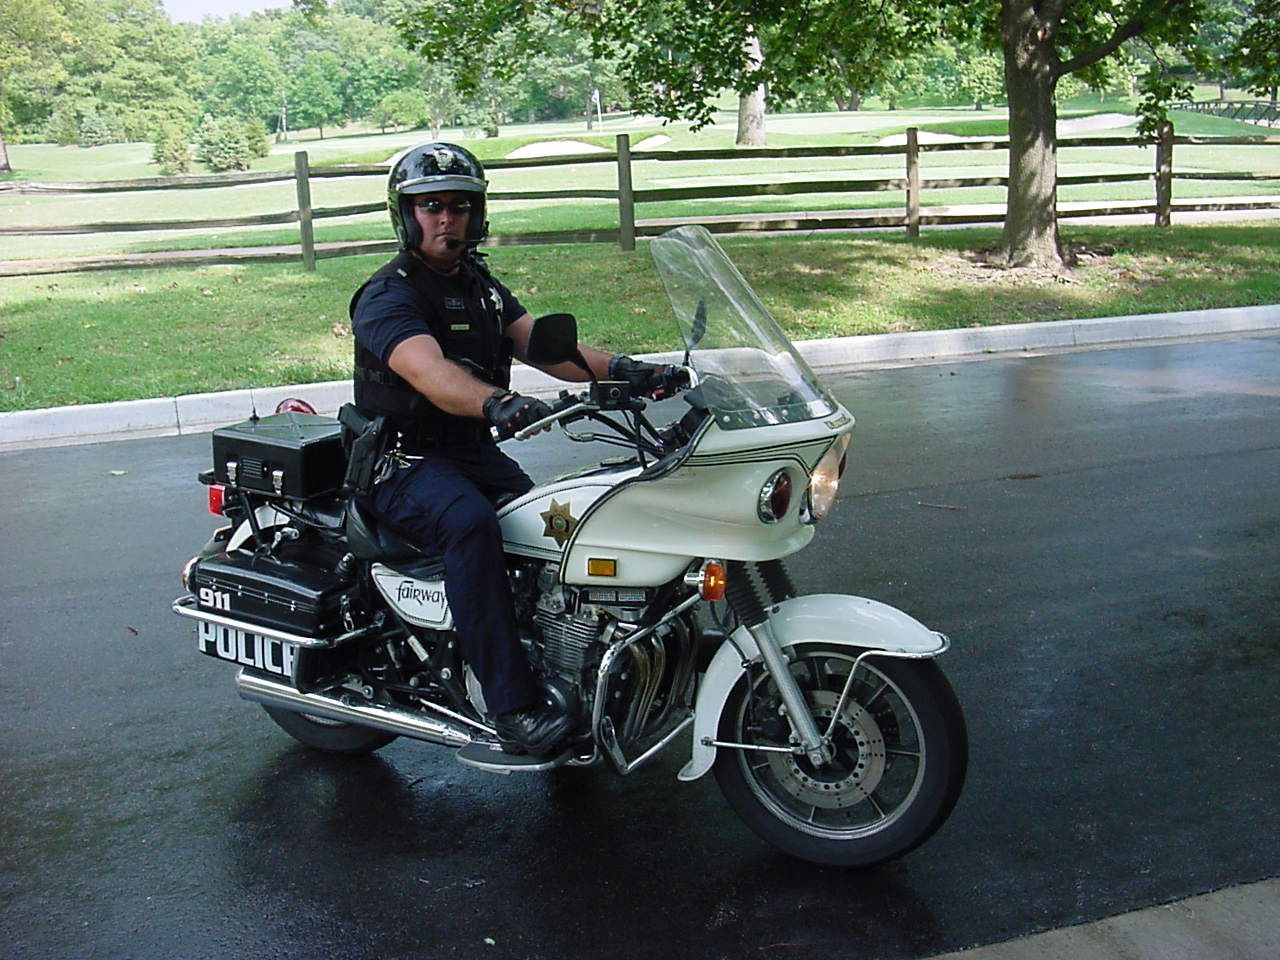 cool kawasaki police motorcycles 38381 | Five-O. Bikes ...